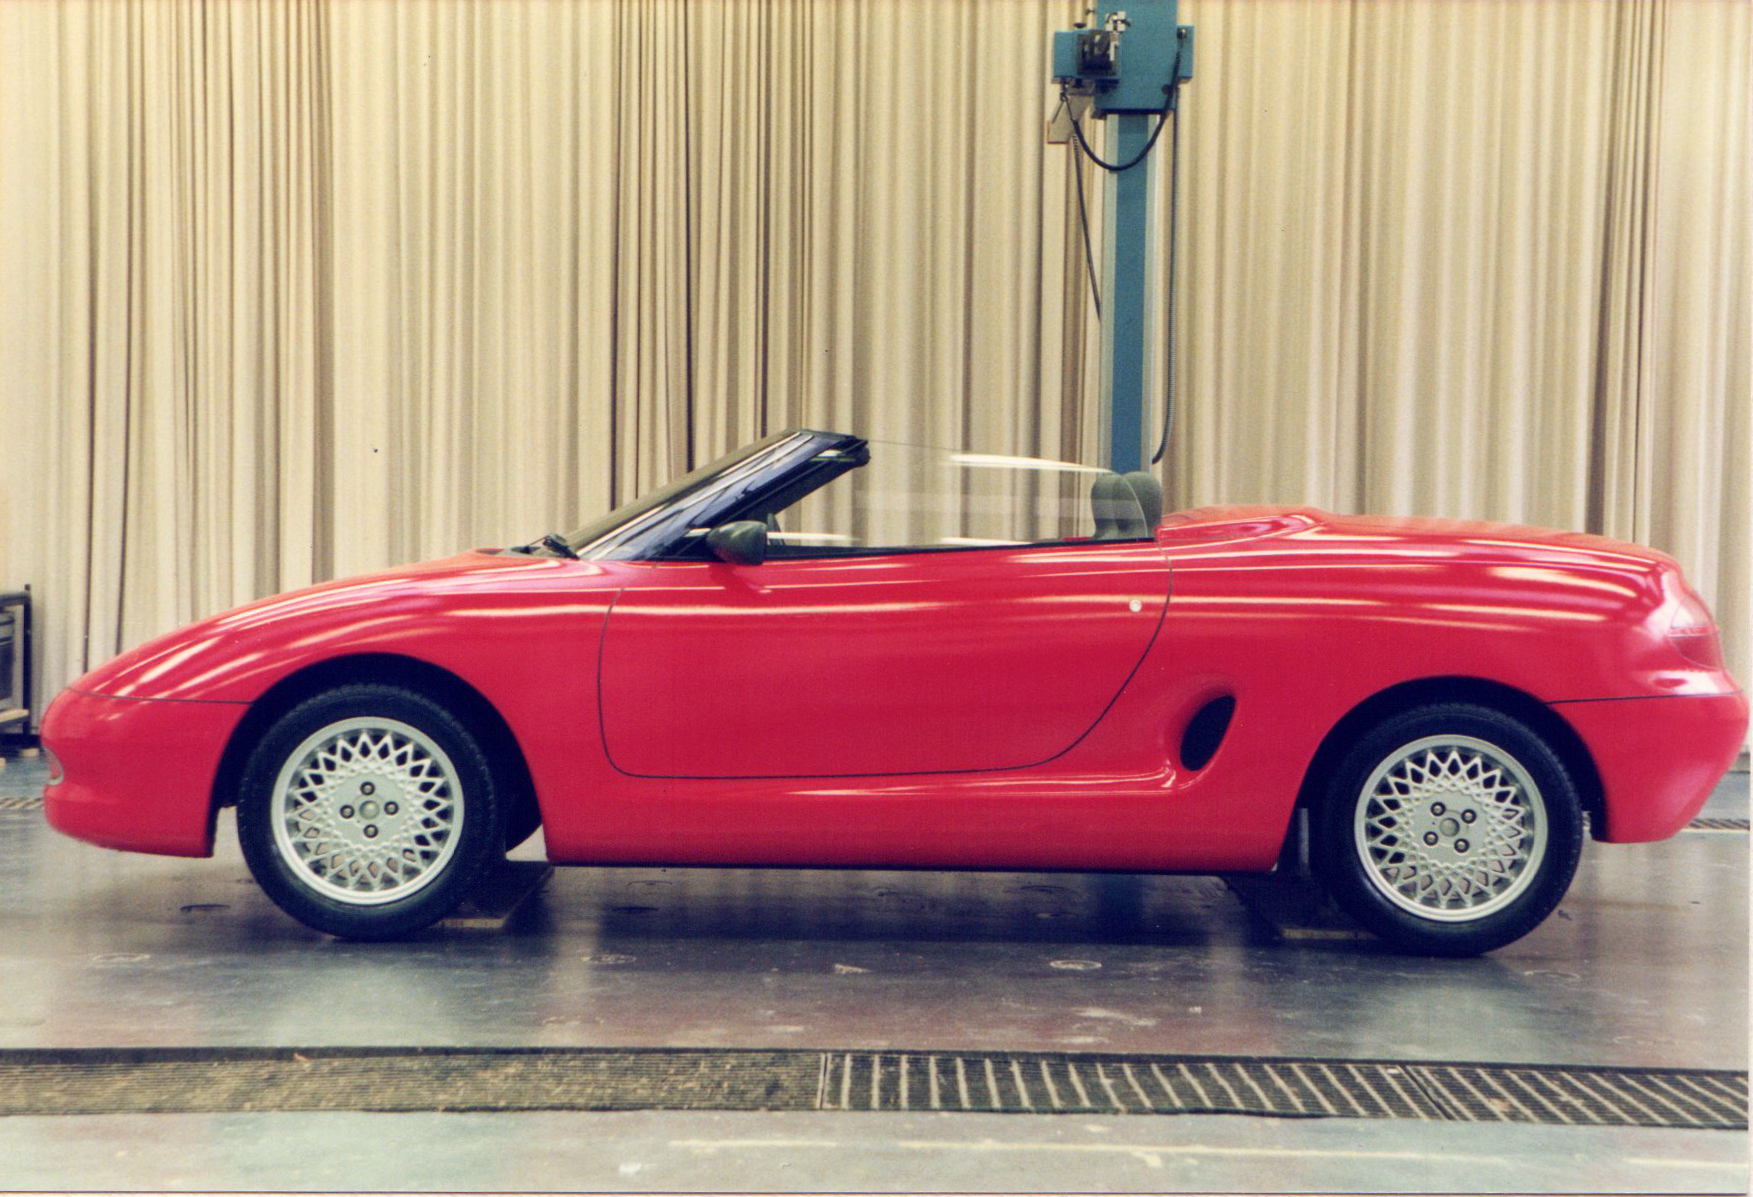 concepts and prototypes mgf during the mga era   aronline aronline